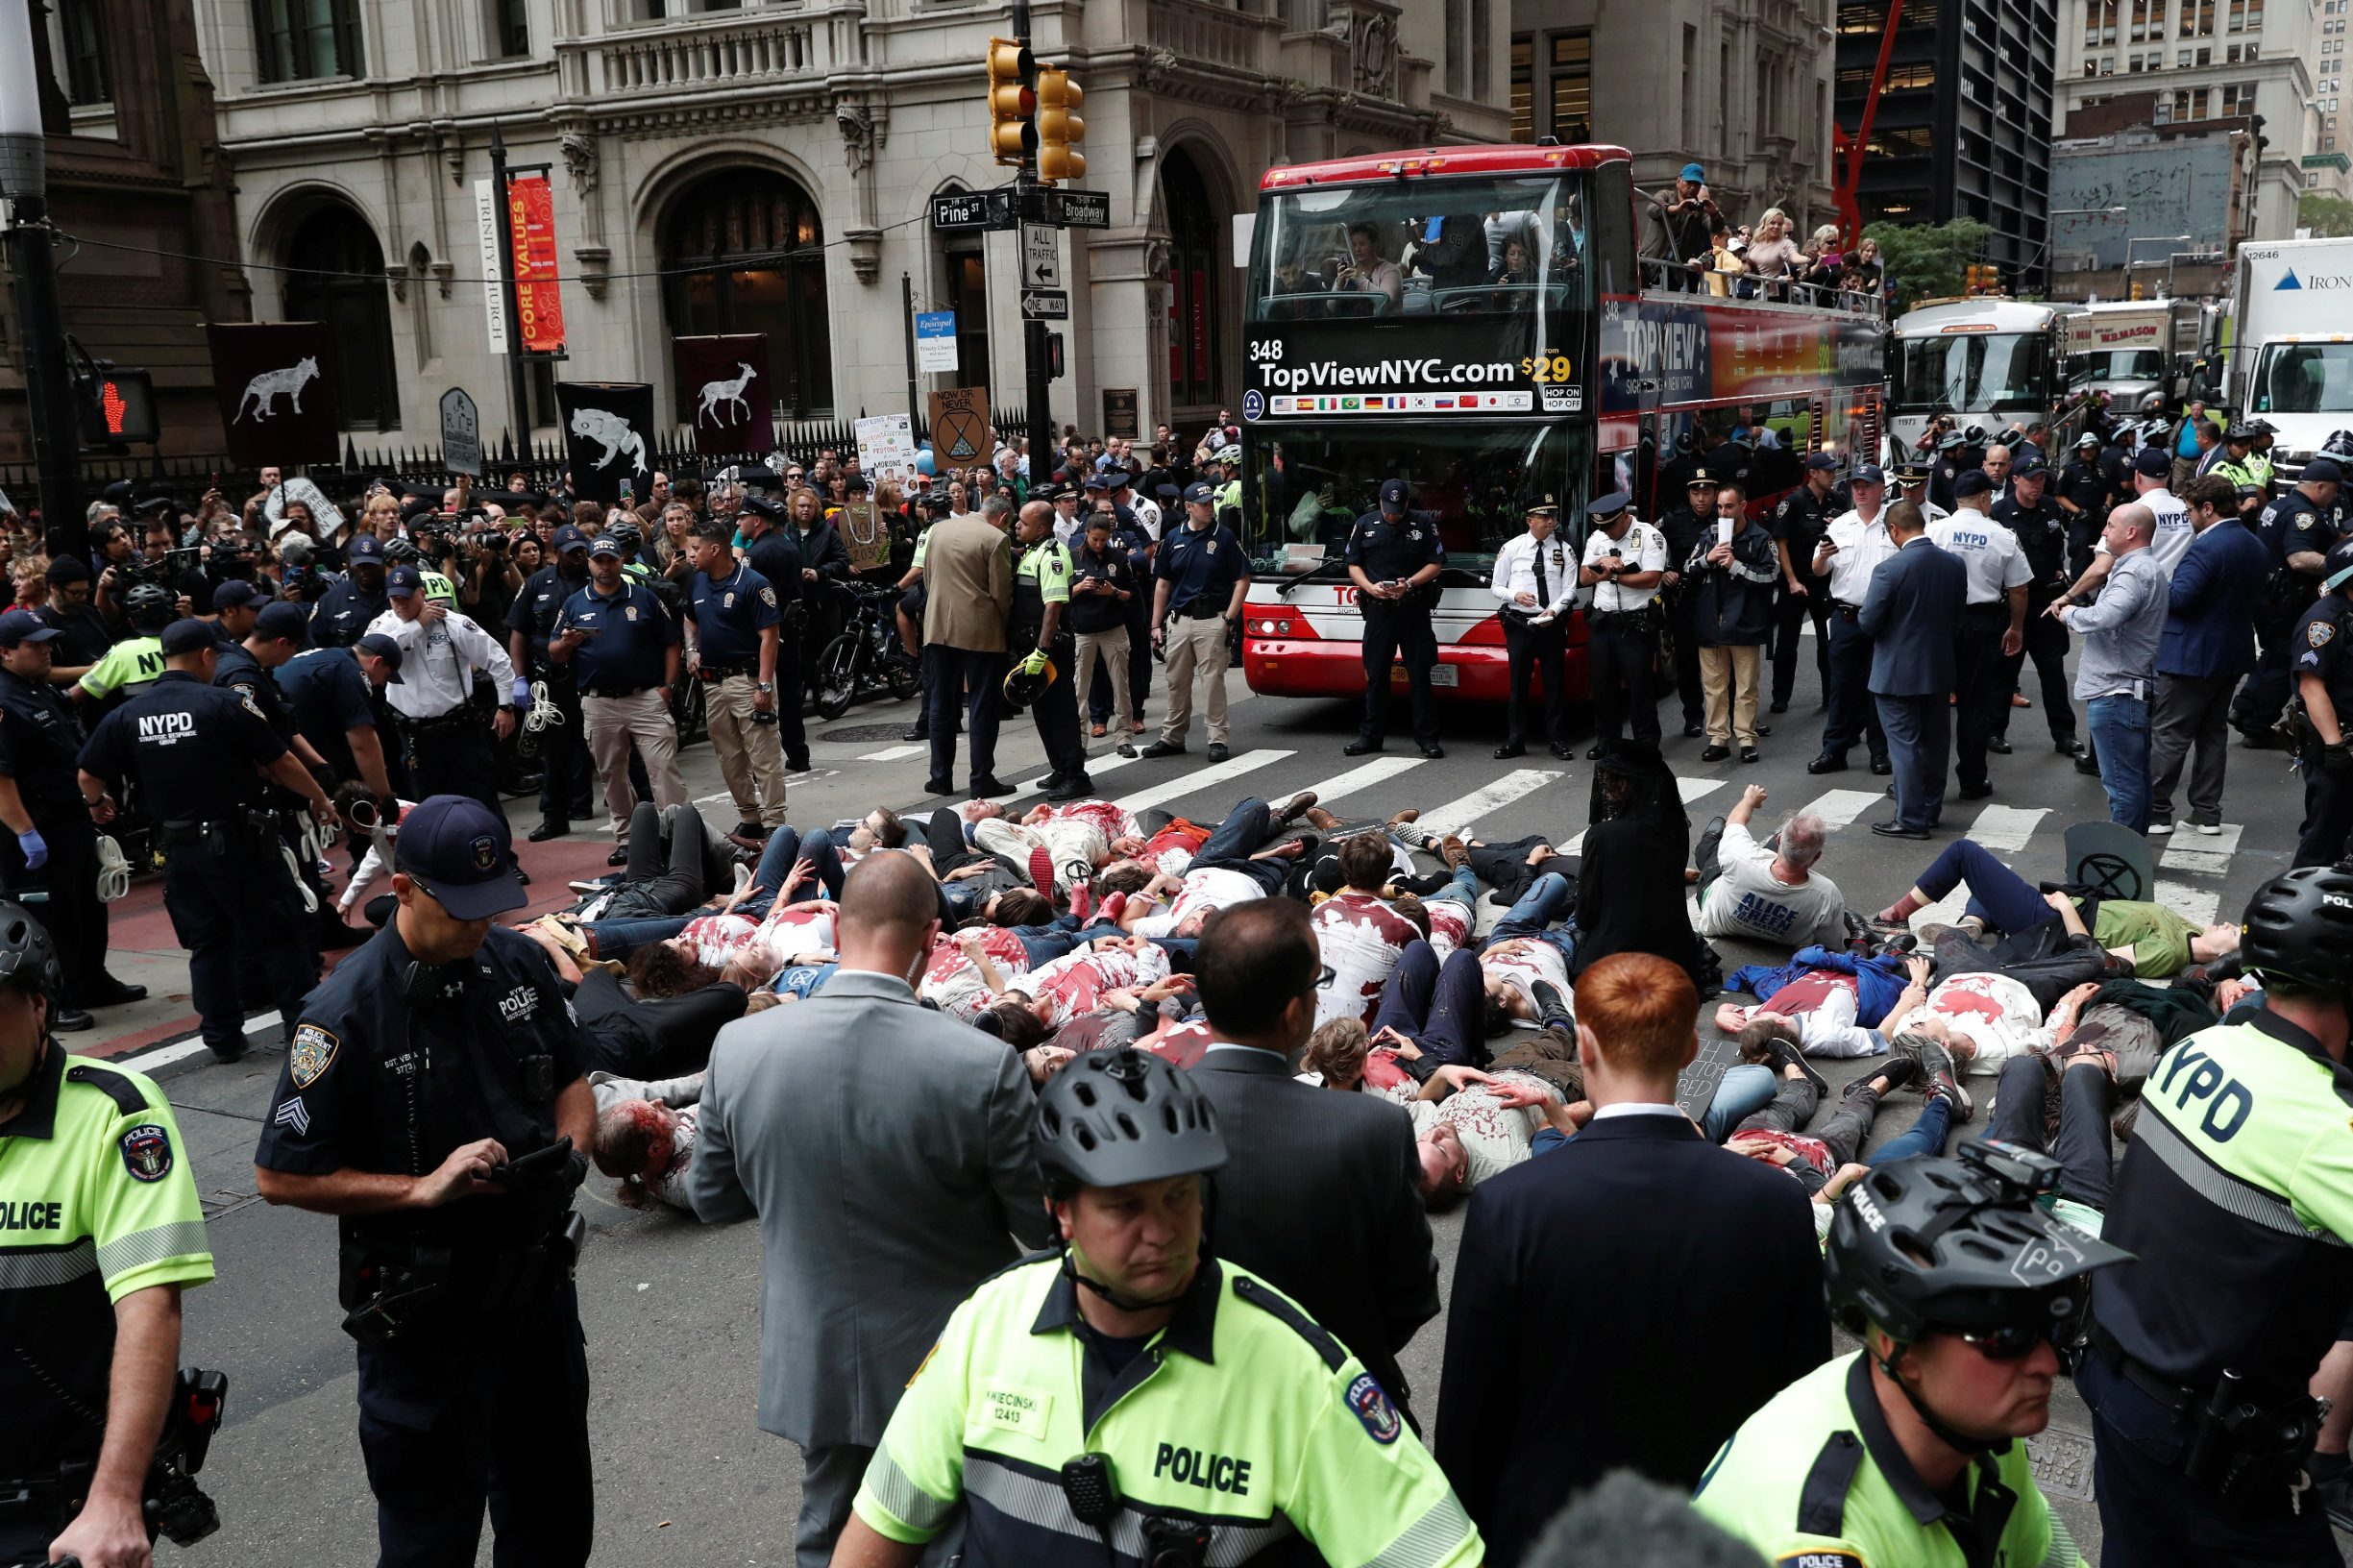 2019-10-07T163530Z_586812647_RC1FA53C5430_RTRMADP_3_CLIMATE-CHANGE-NEW-YORK-PROTESTS